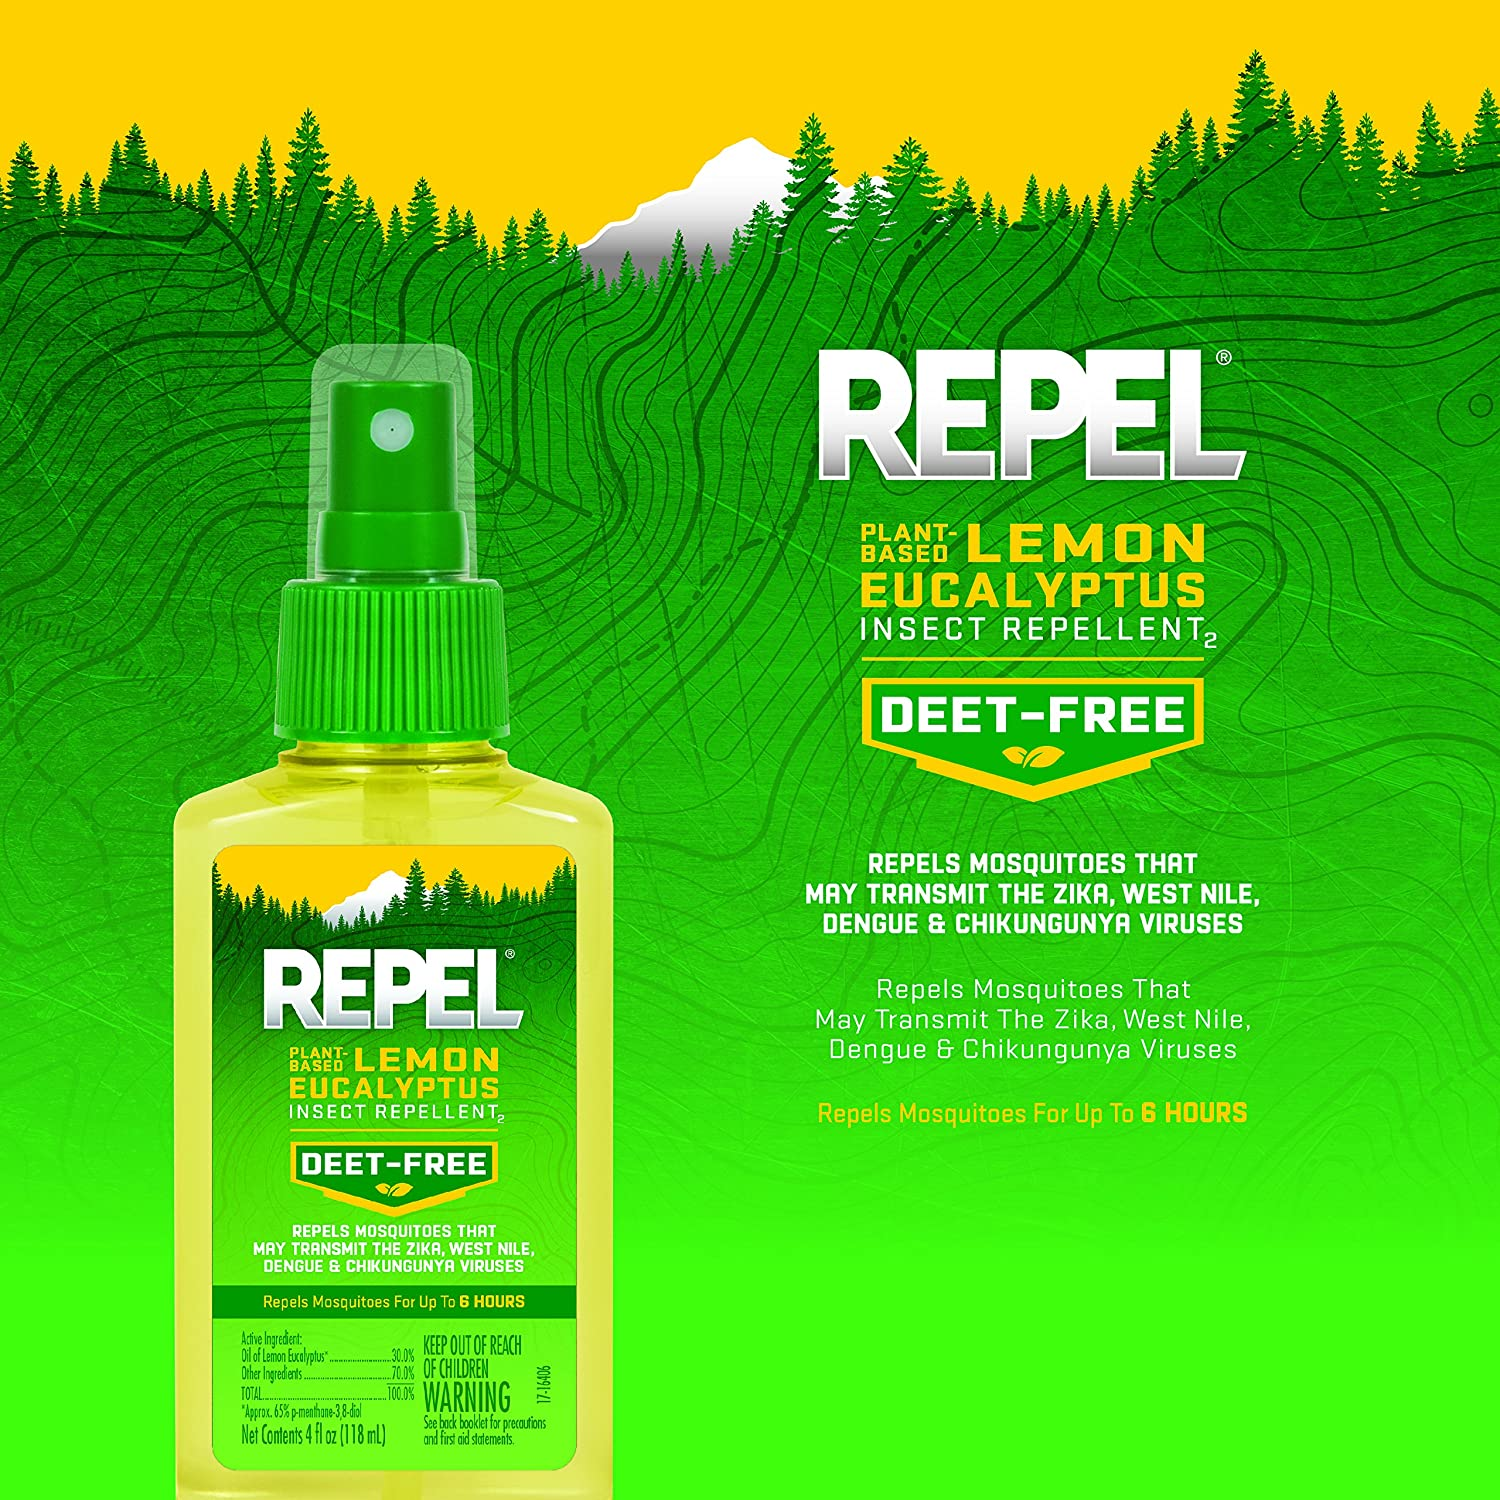 Repel Lemon Eucalyptus Natural Insect Mosquito Repellent